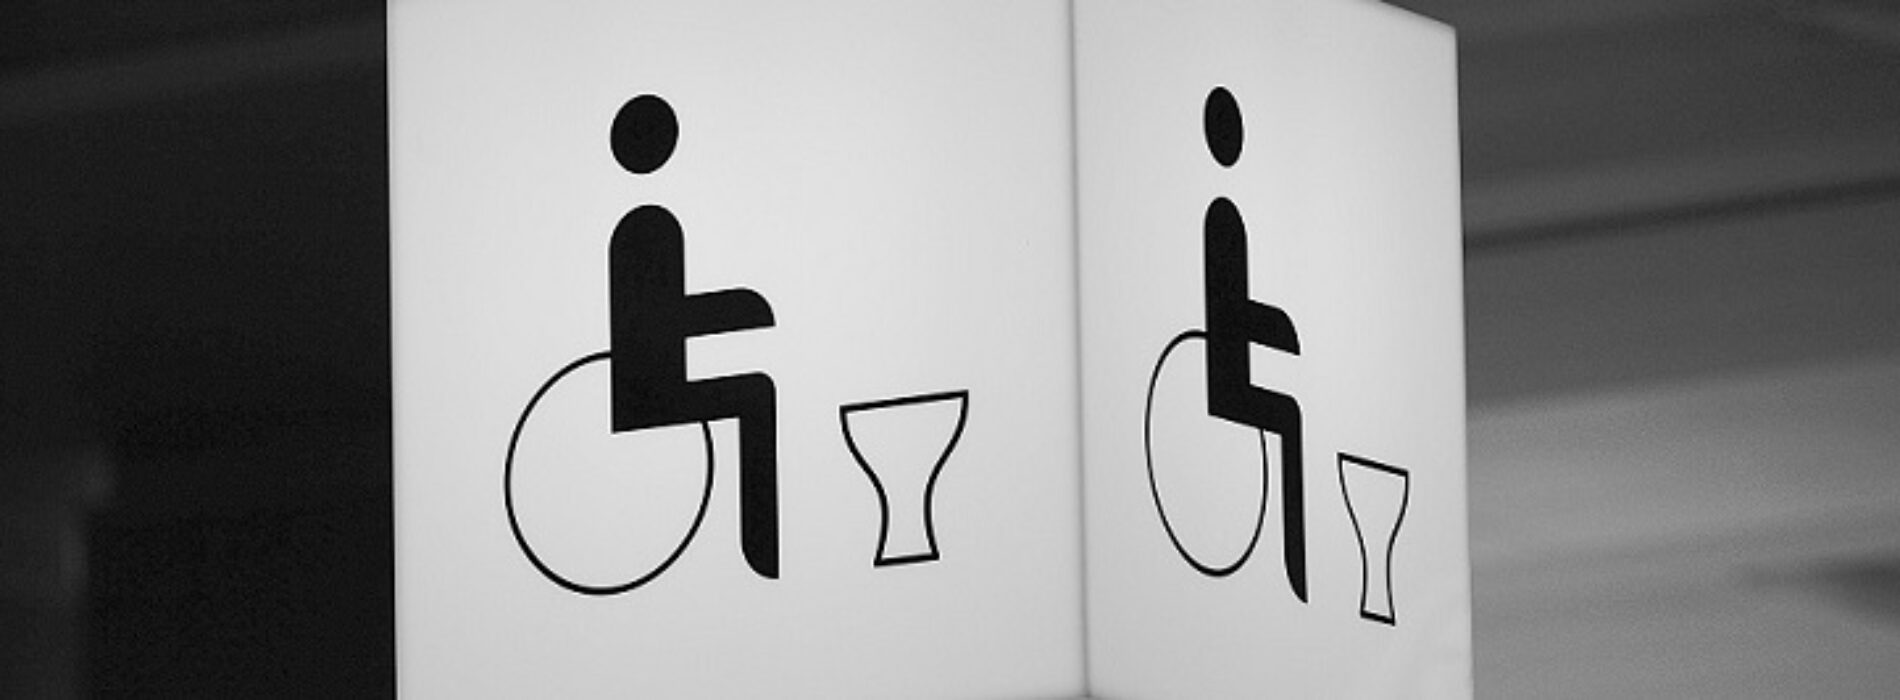 More than 70% of disabled people we surveyed say UK attractions lack useable accessible toilets